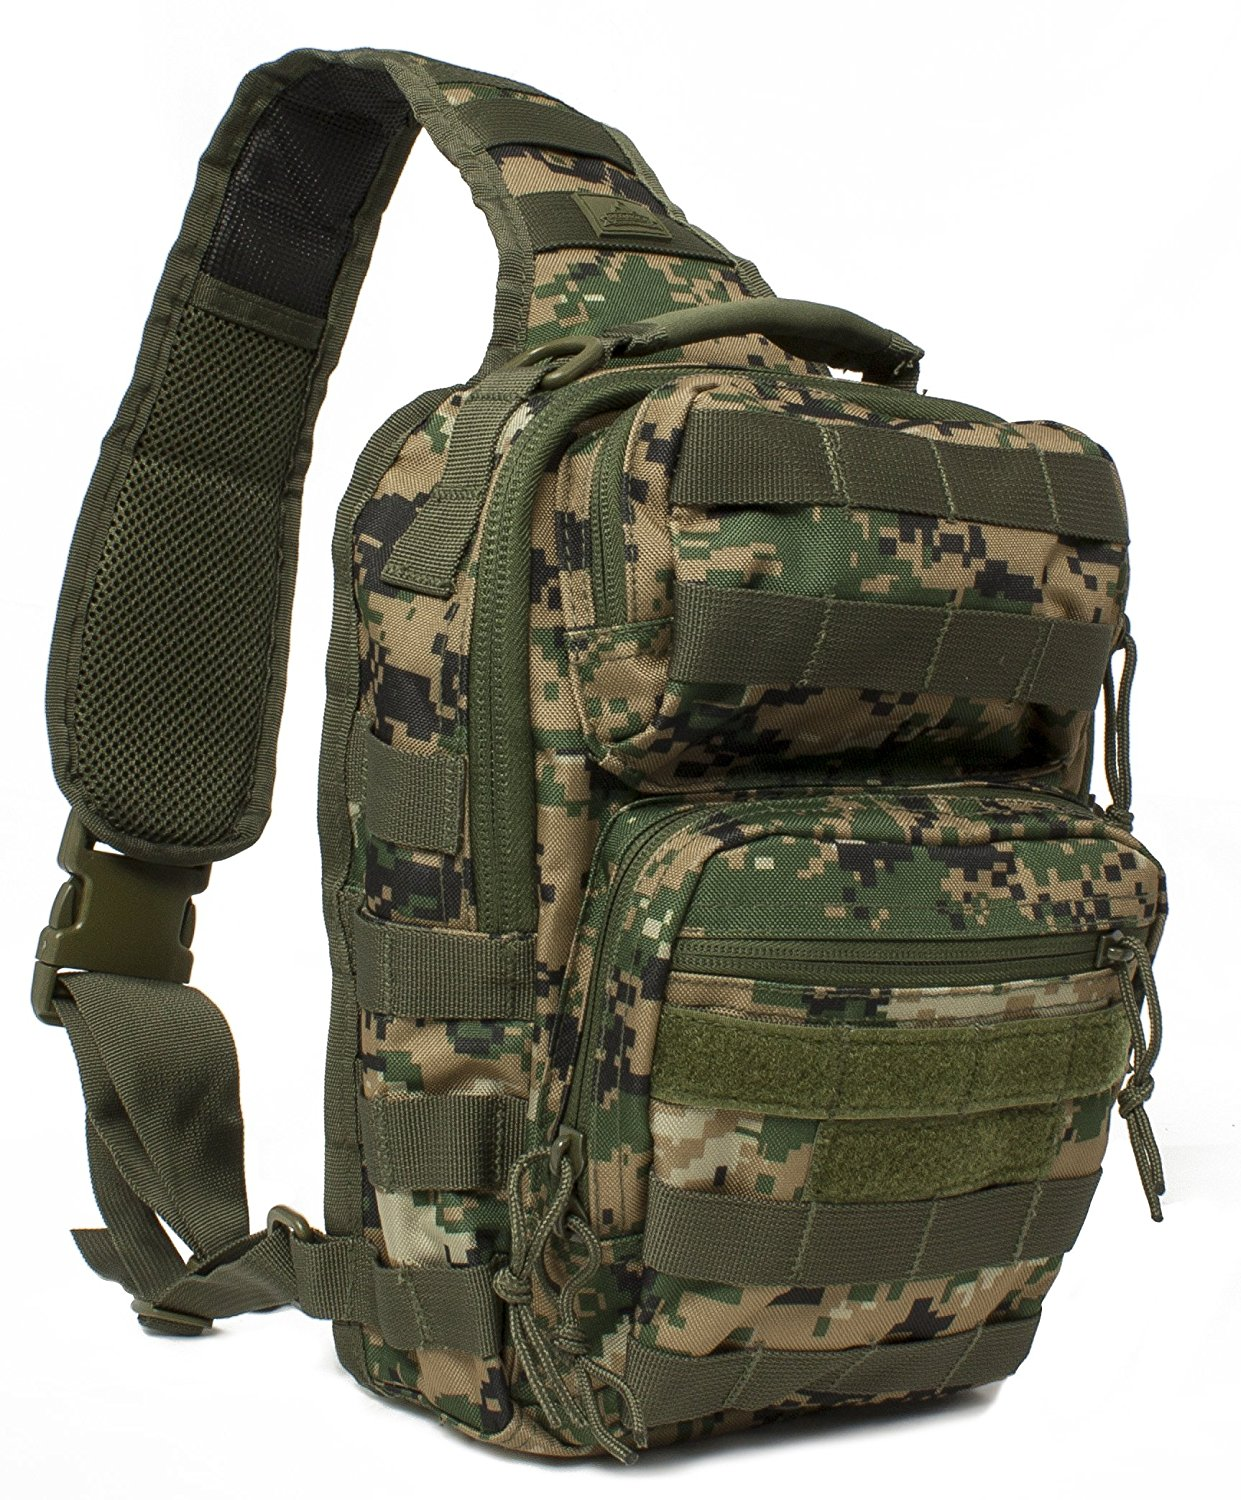 Red Rock Outdoor Gear Rover Sling Pac